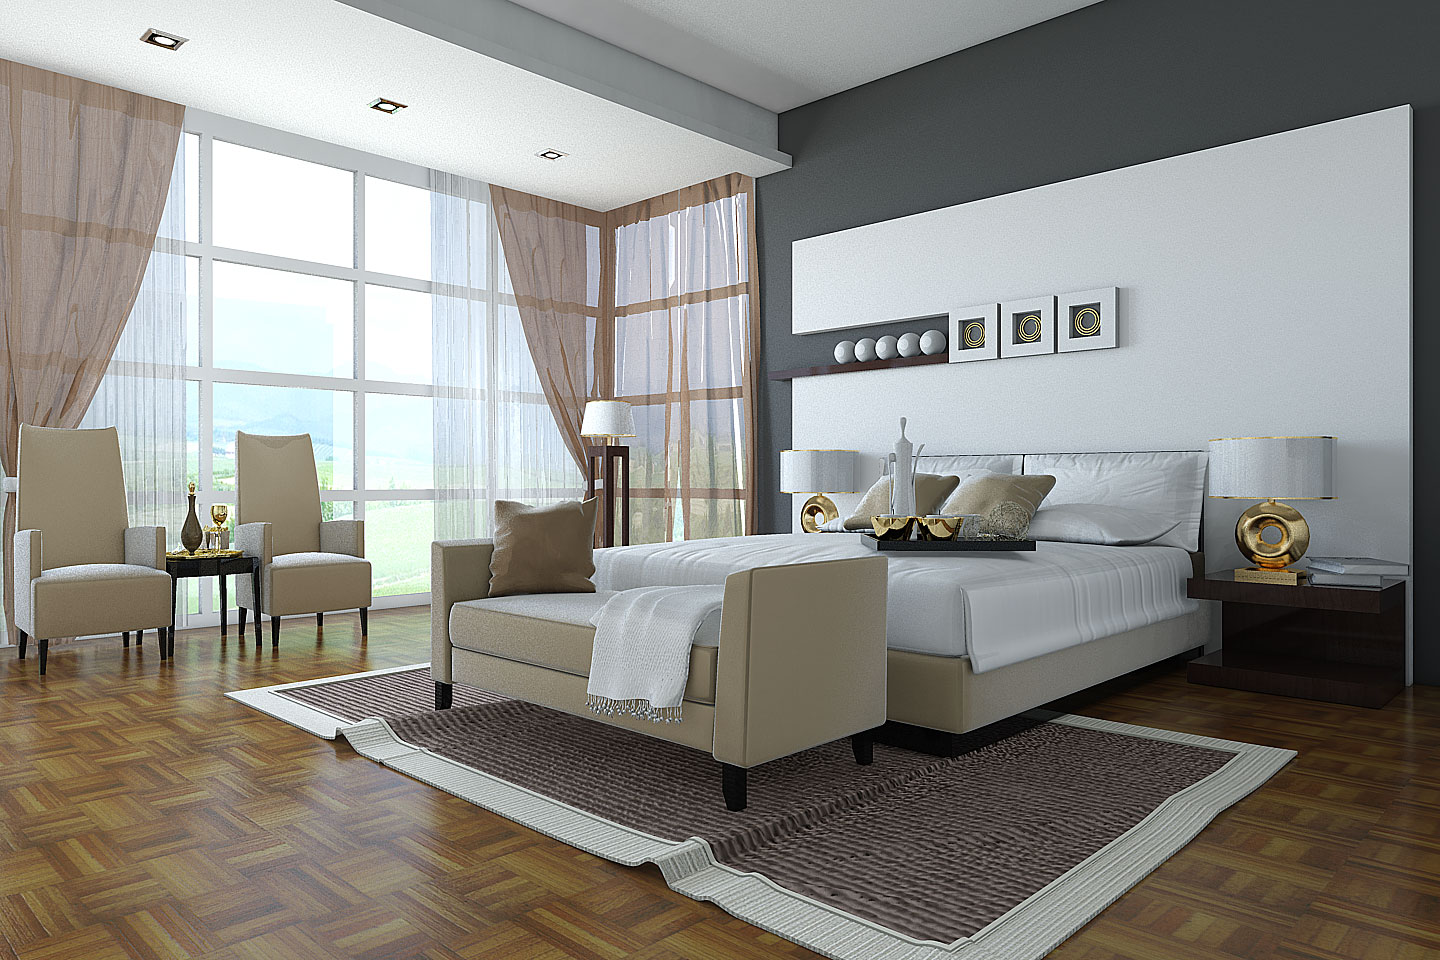 Amazing Bedroom Designs 1440 x 960 · 311 kB · jpeg